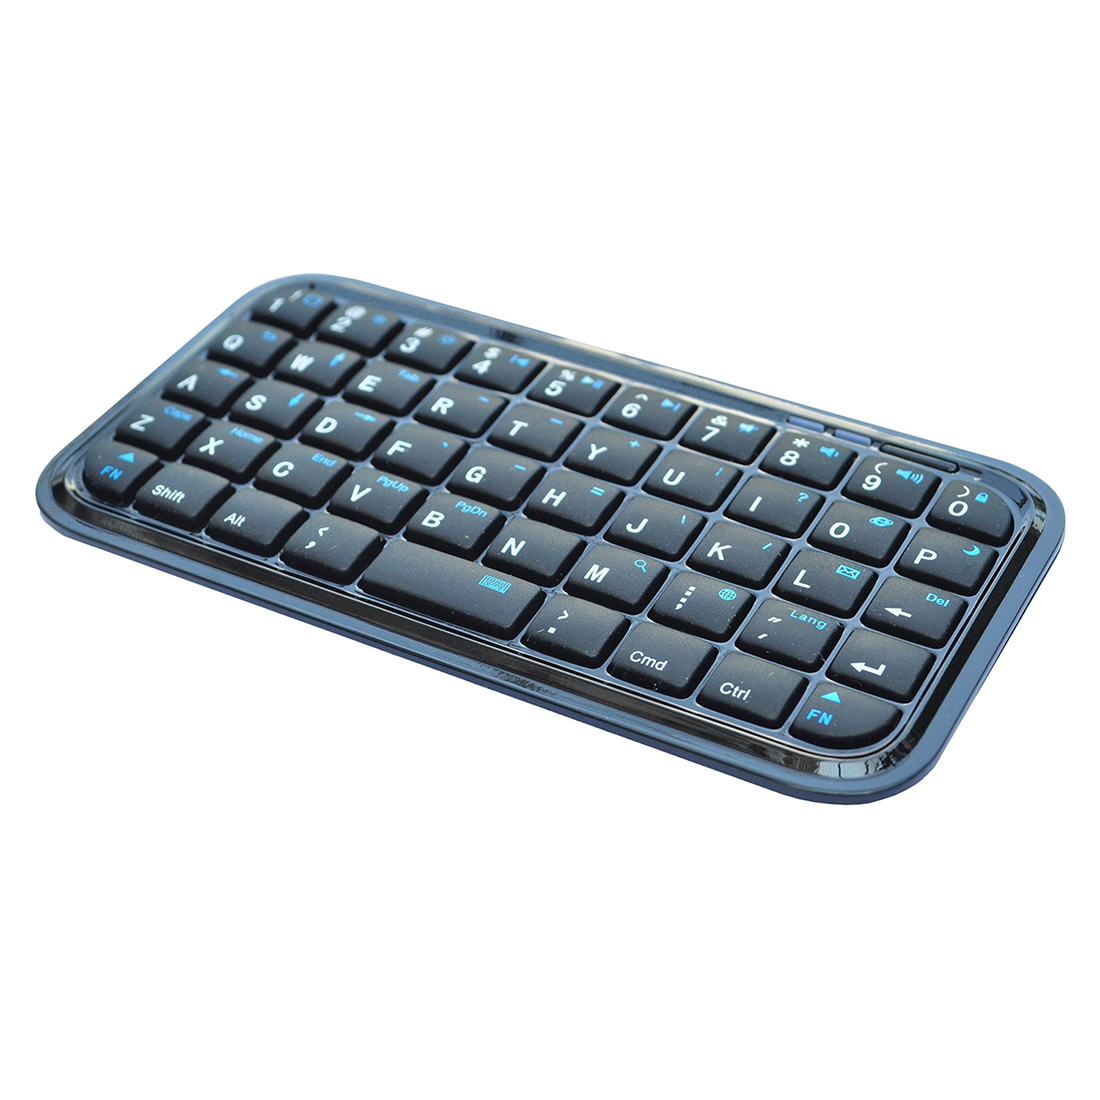 <font><b>Mini</b></font> Bluetooth Wireless <font><b>Keyboard</b></font> for iPhone <font><b>4</b></font> <font><b>iPad</b></font> iPaq PDA MAC OS PS3 Droid Smart Phones PC Computers Bluetooth Portable Keyb image